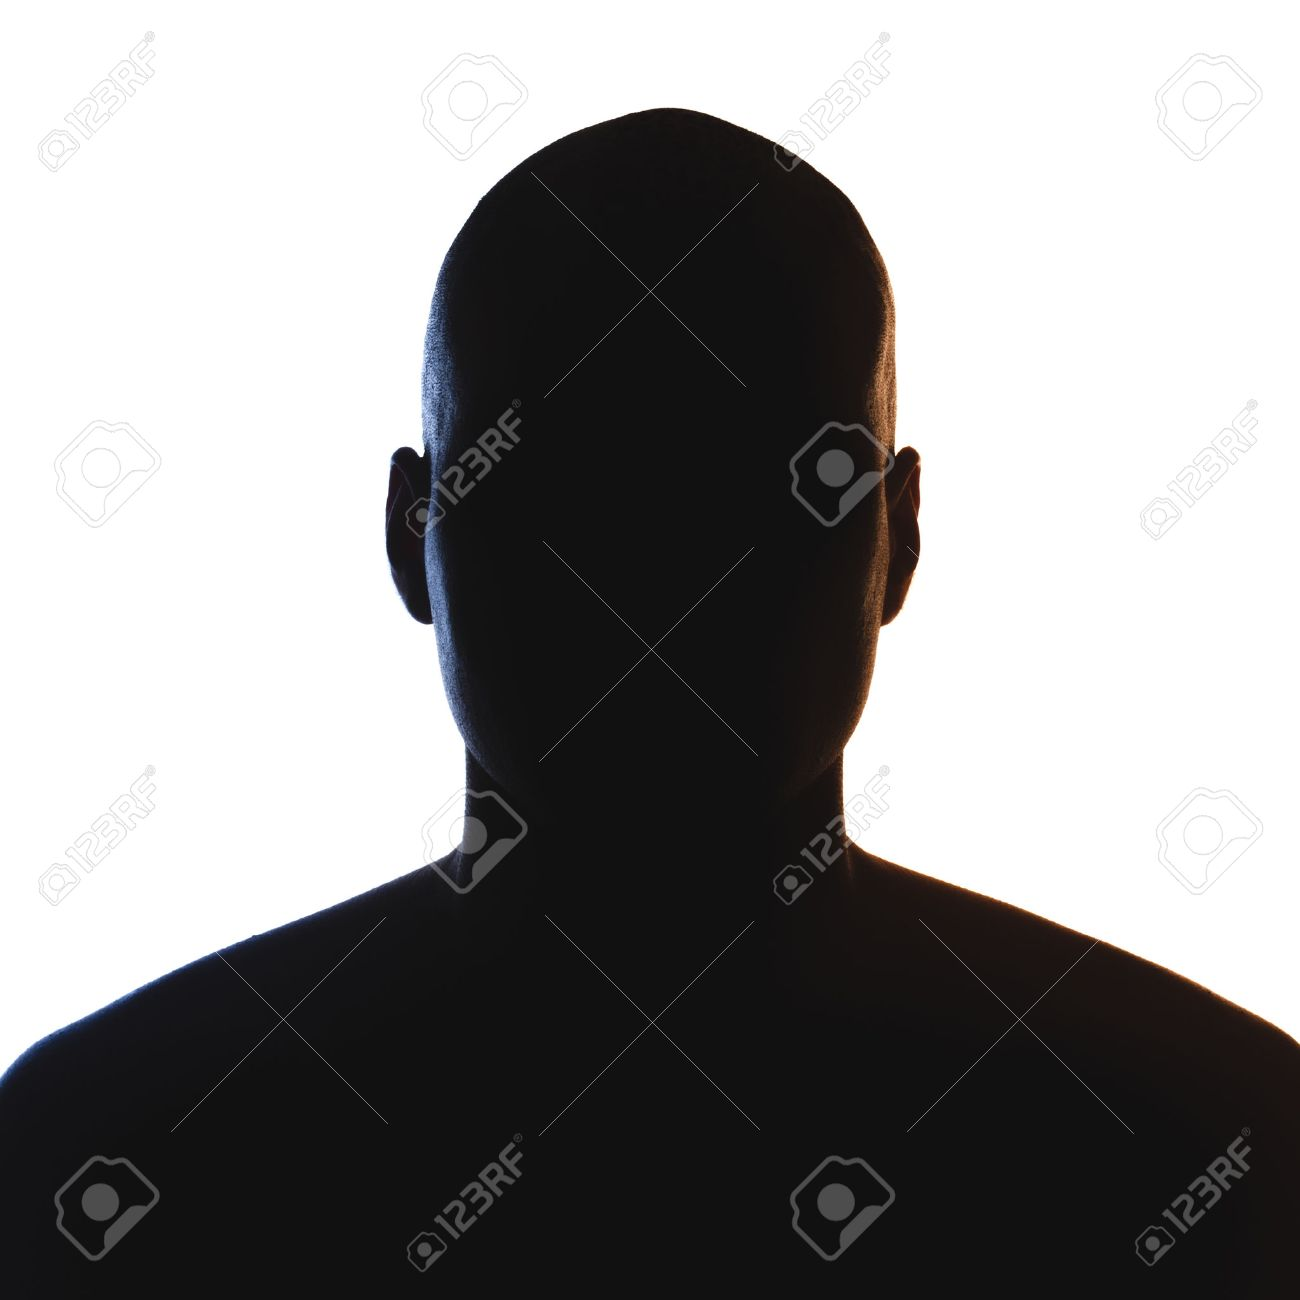 Unknown male person silhouette. Back lit studio isolated Stock Photo - 43715318